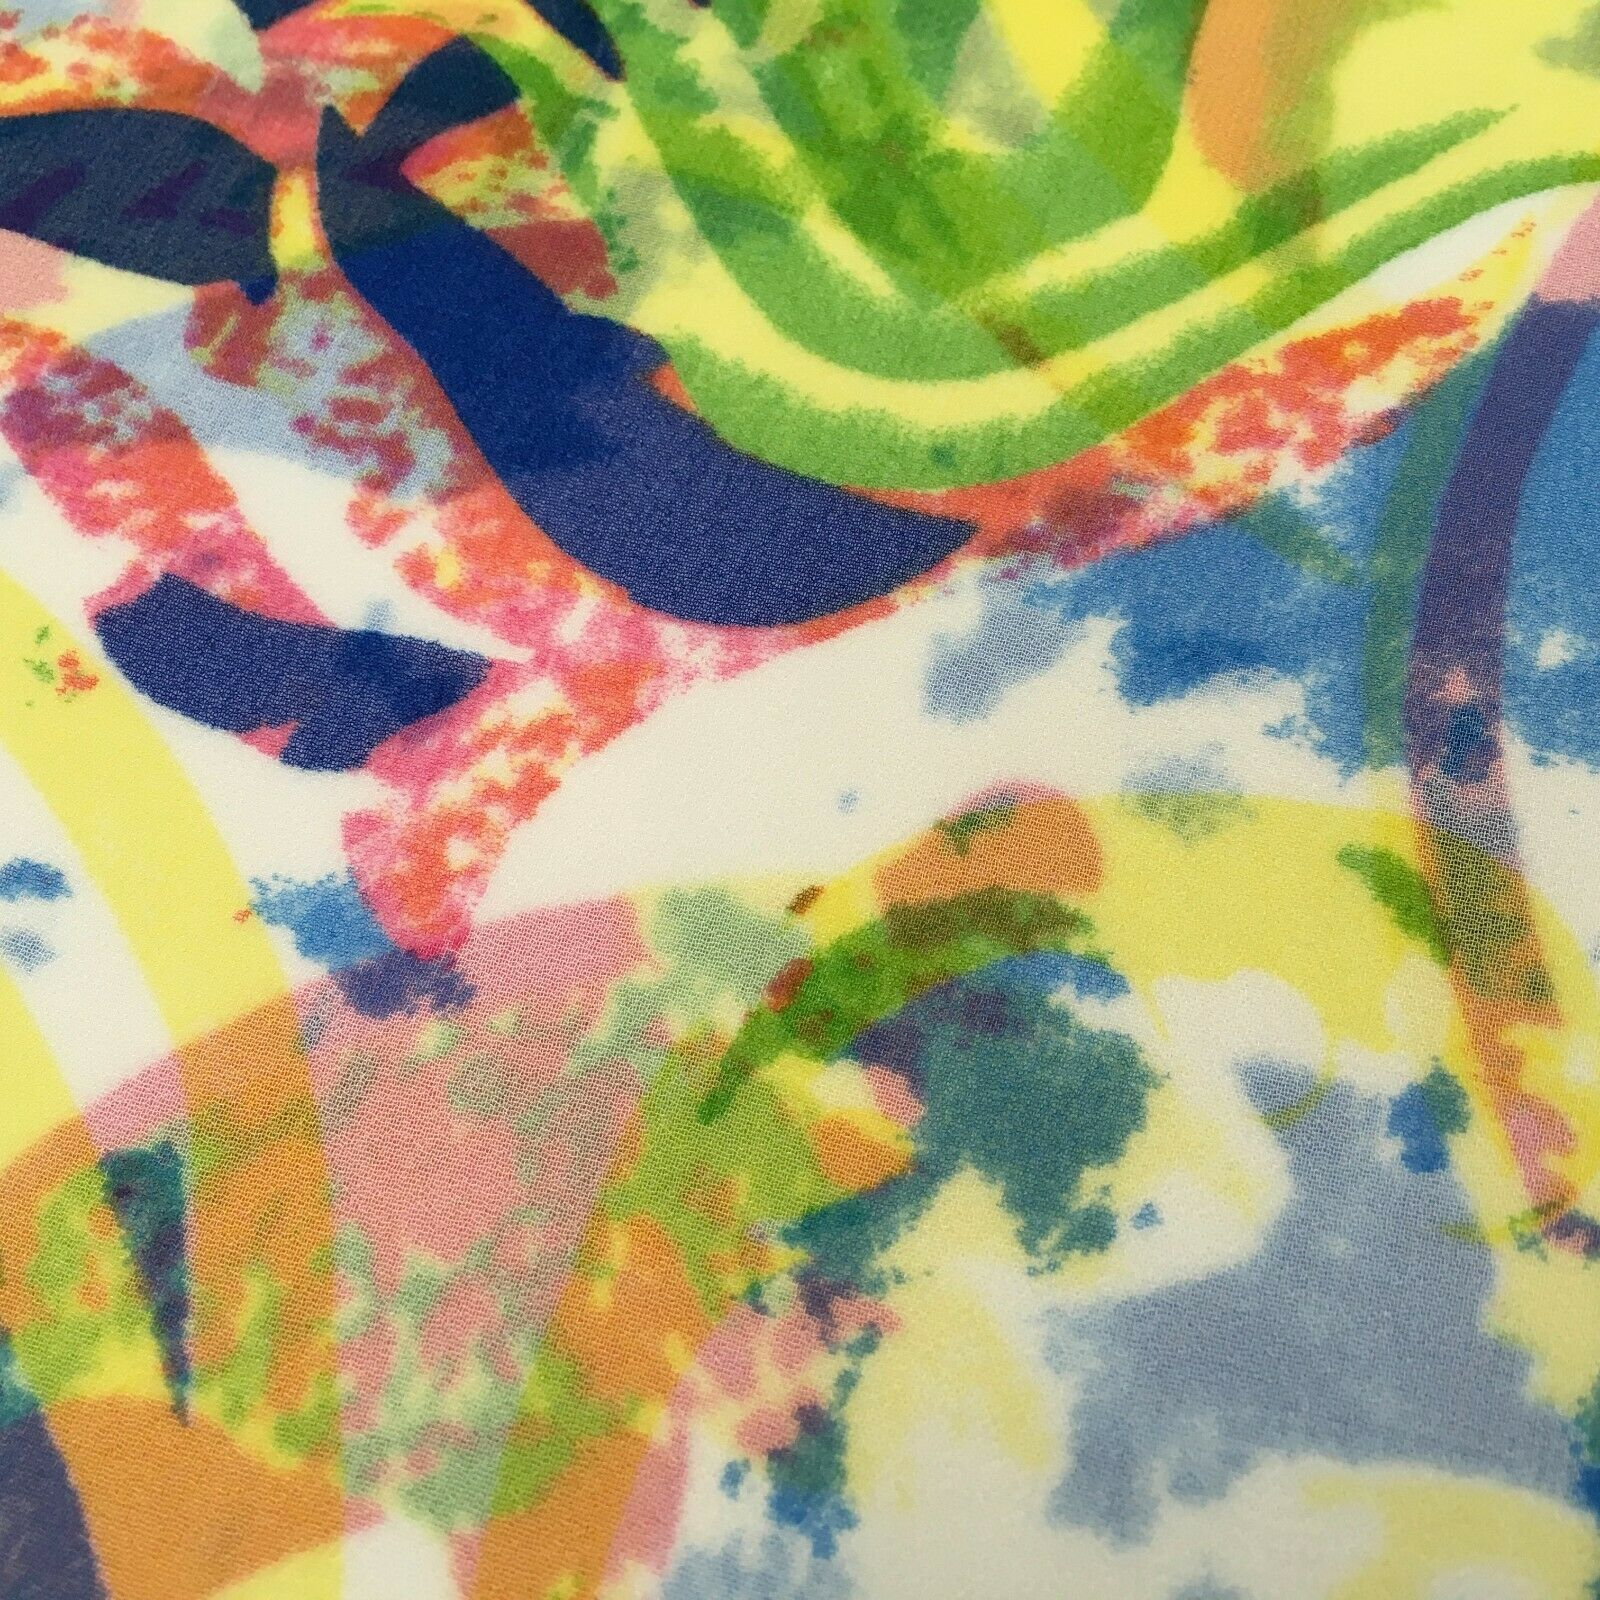 Green Yellow ivory Abstract Printed High Street Chiffon Fabric 150 cm MK1084-14